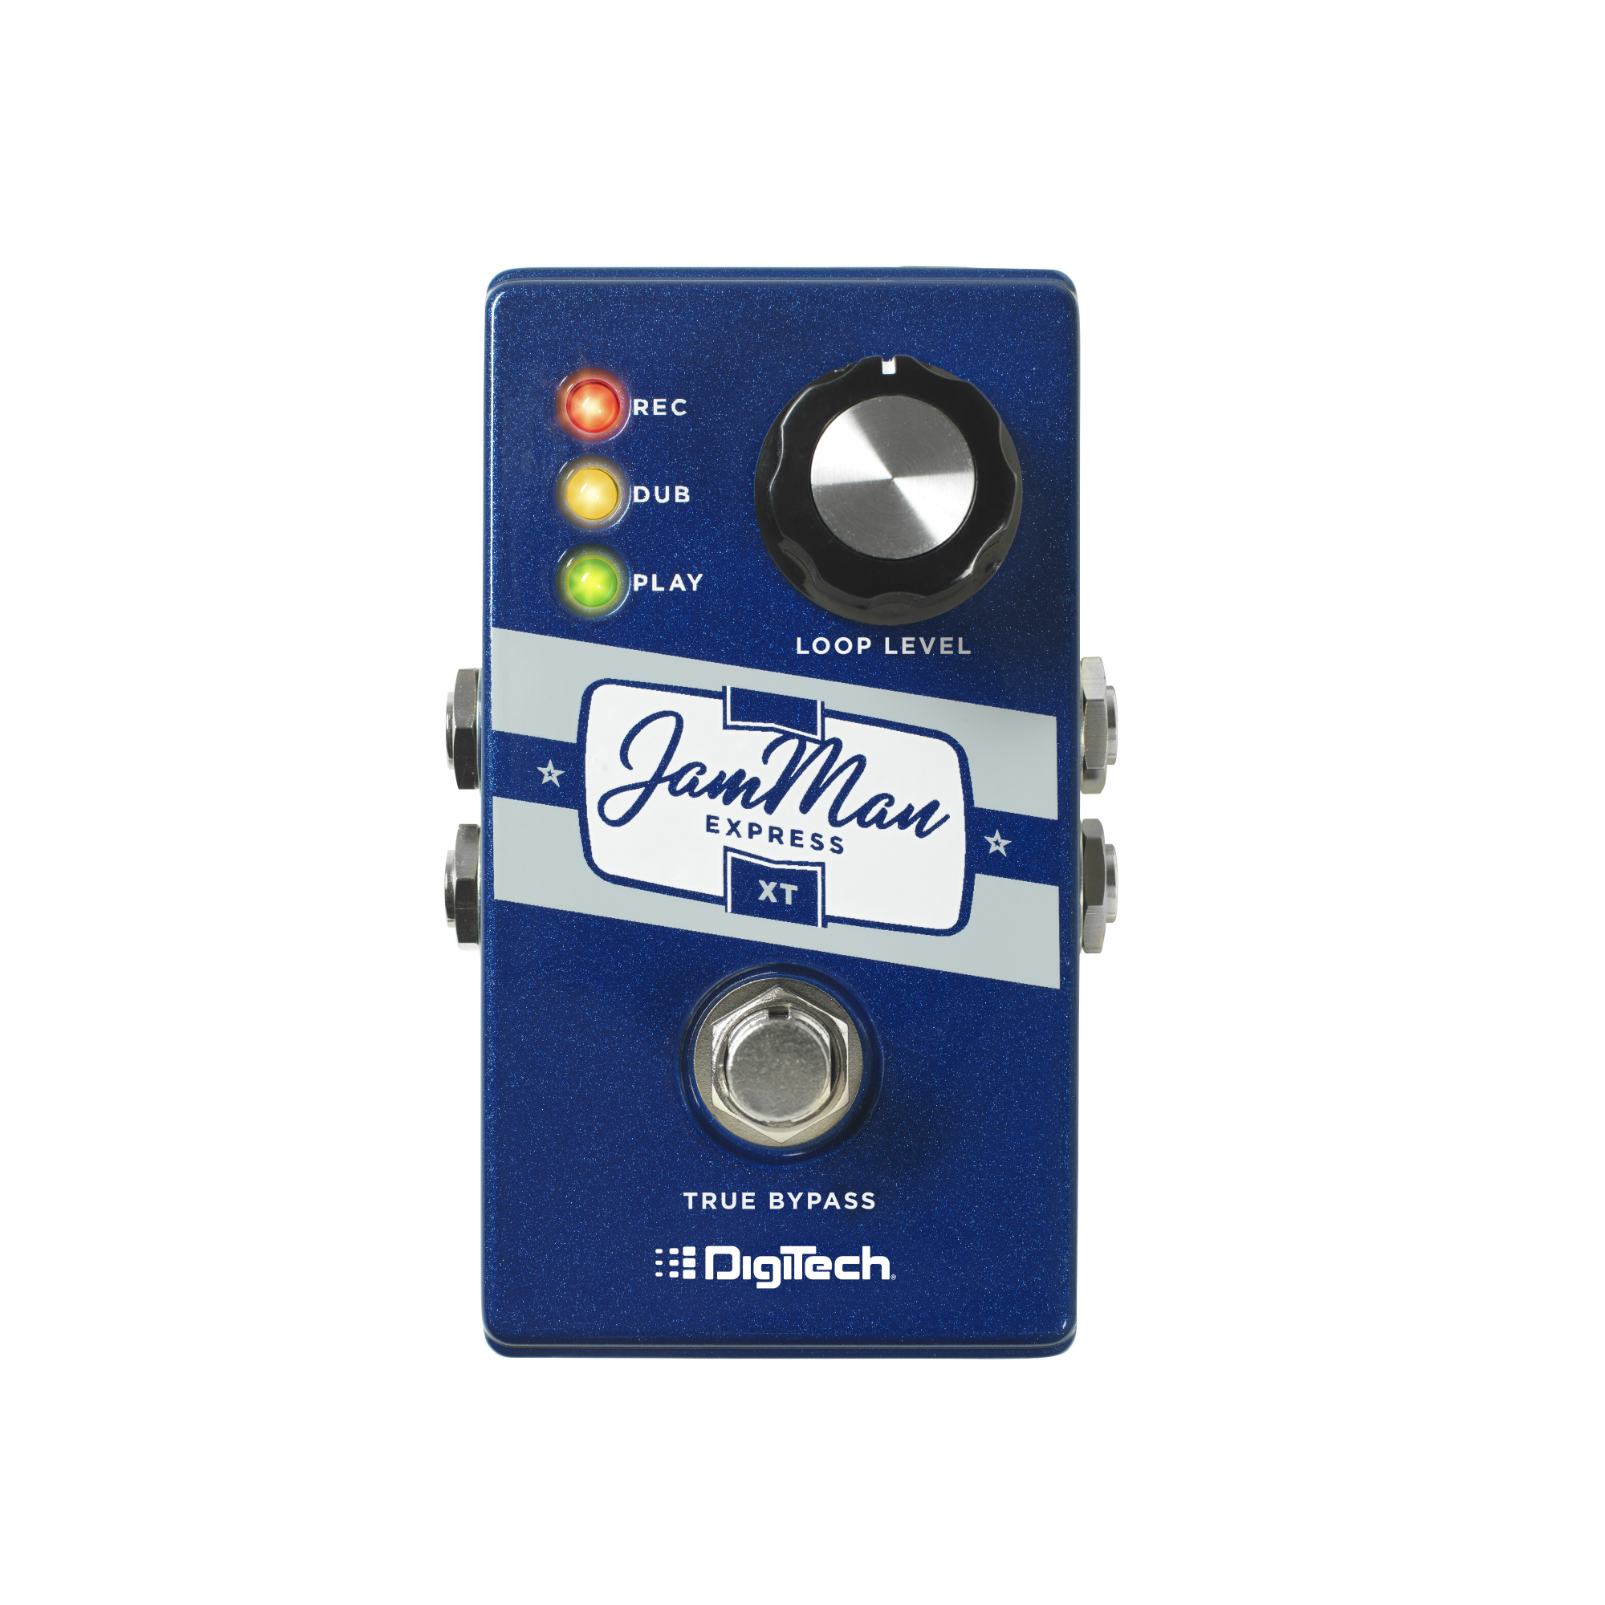 JamMan Express XT (discontinued) - Blue - Compact Stereo Looper with JamSync - Hero